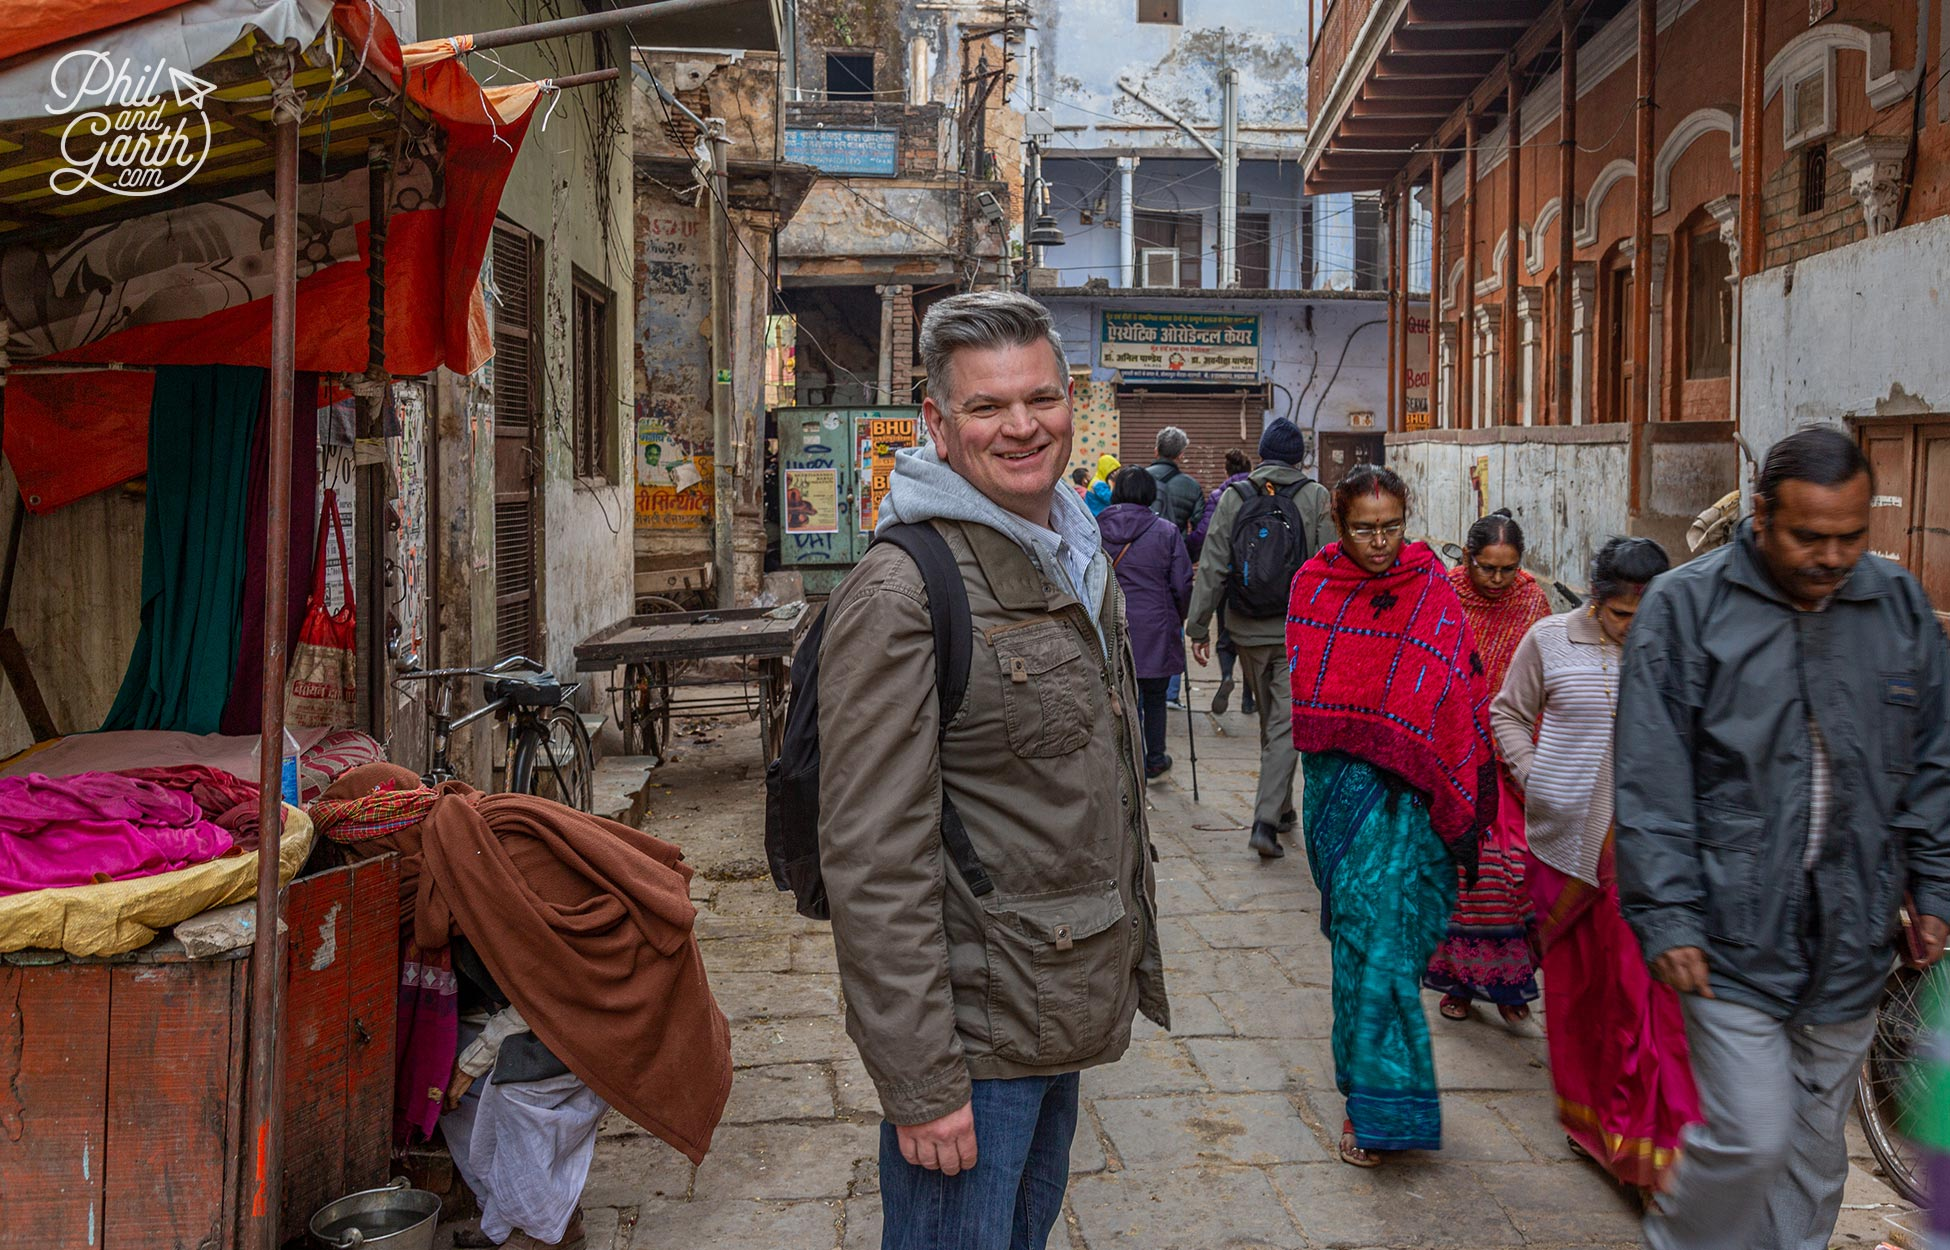 The back and side streets of Varanasi are fascinating to wander around